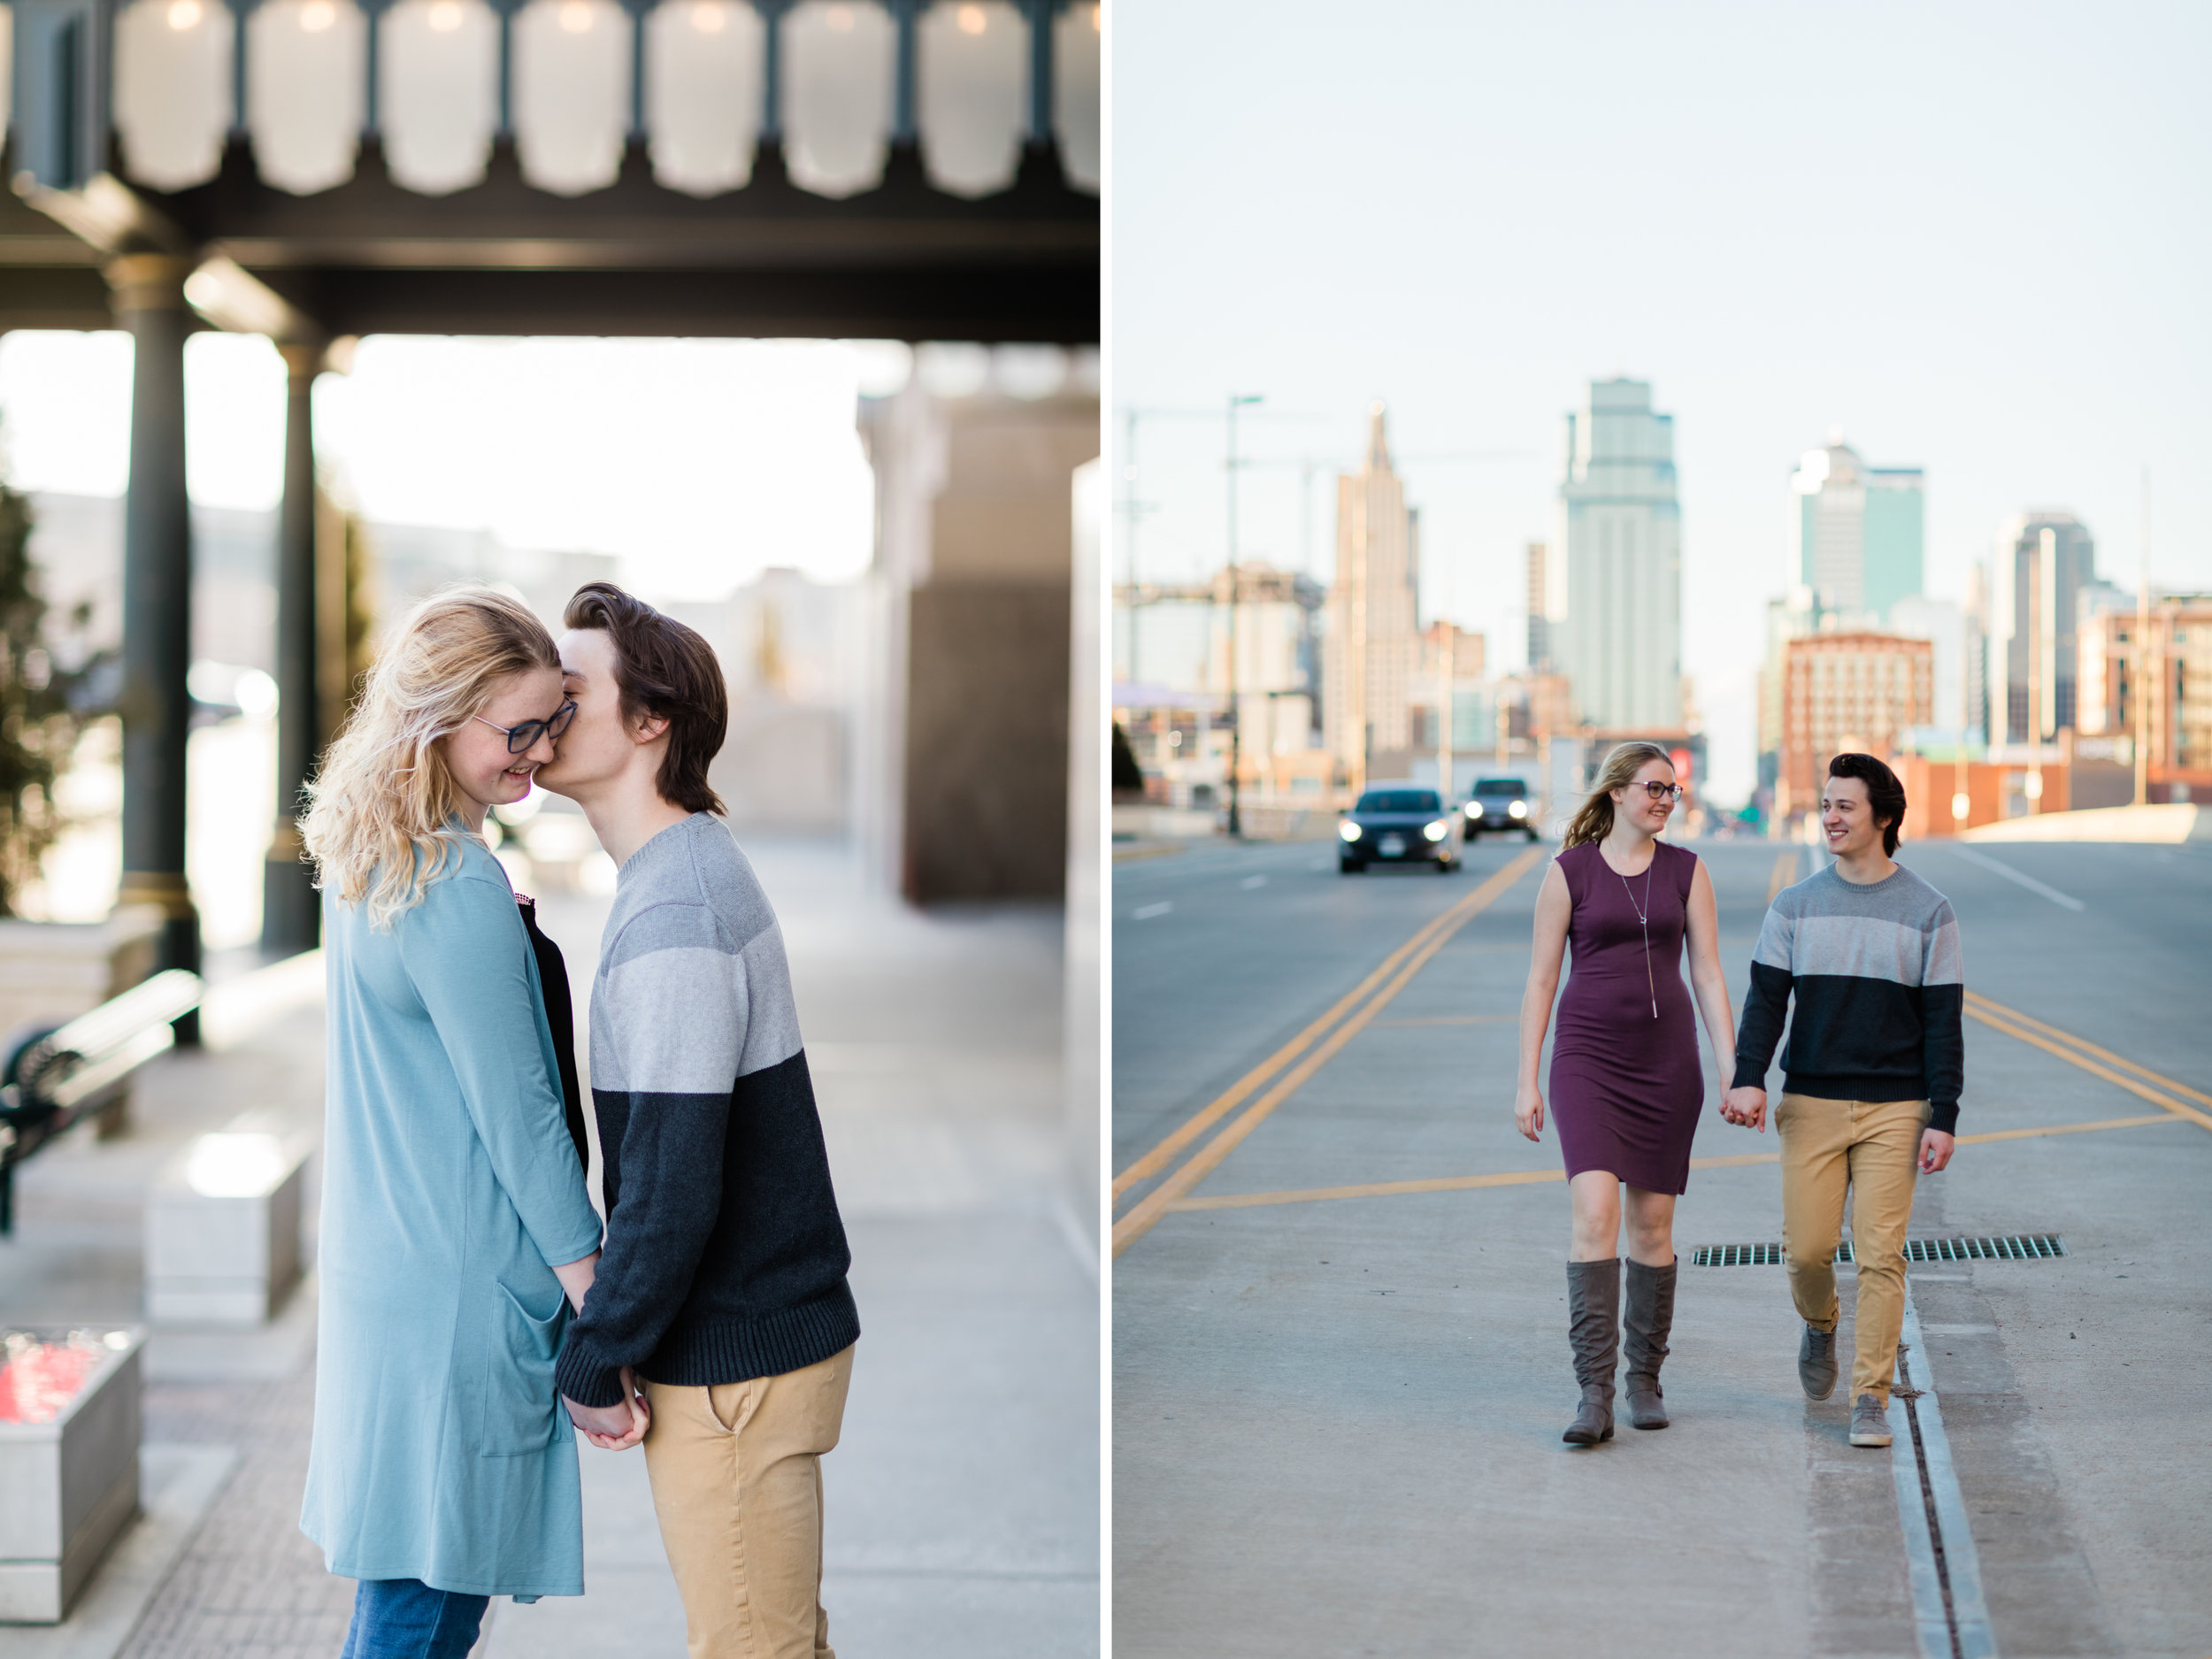 Downtown Kansas City Union Station Engagement Photo.jpg